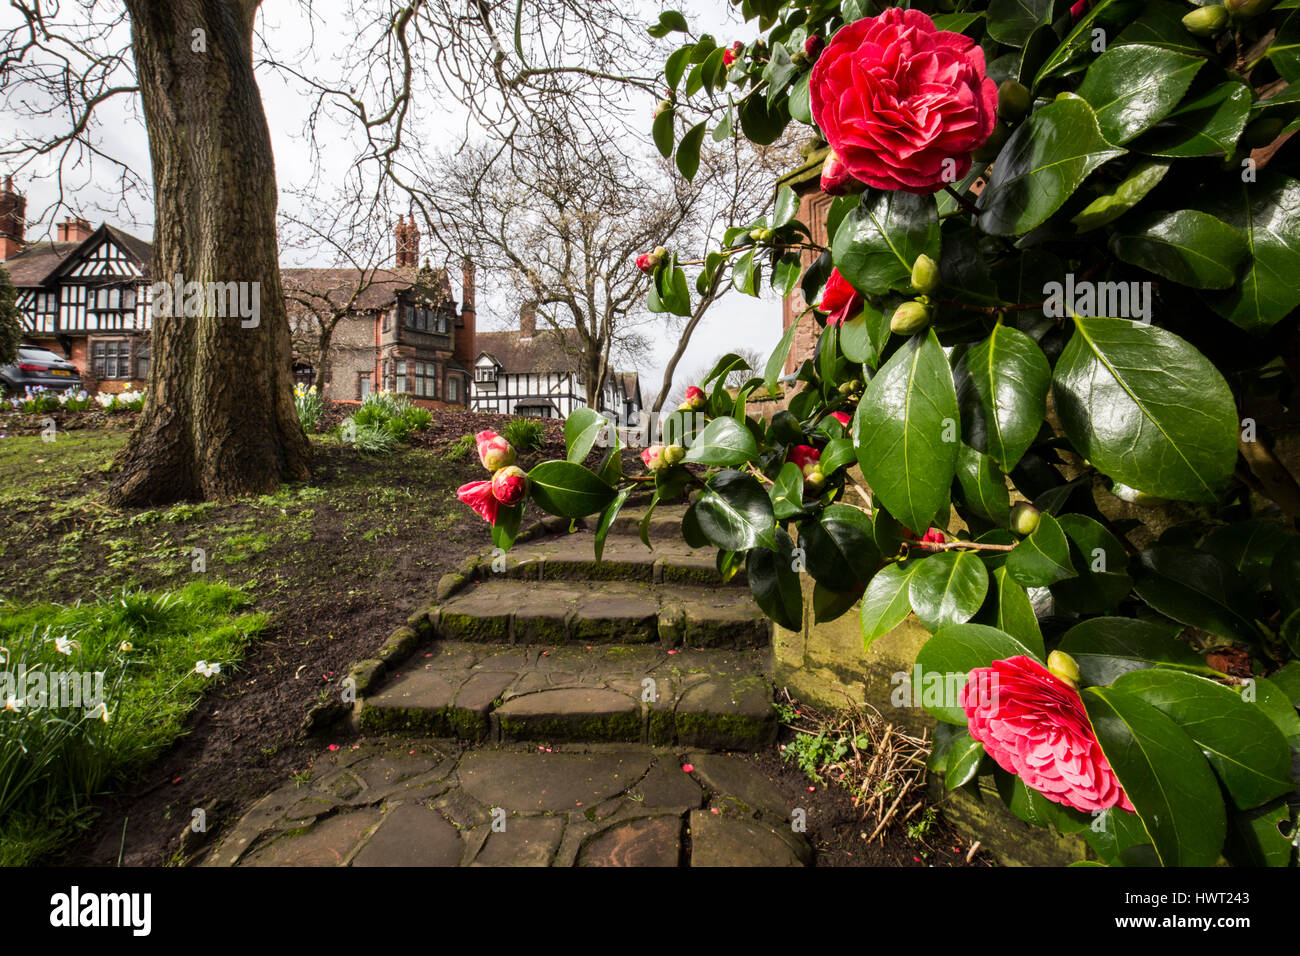 Port Sunlight - a model village and suburb in the Metropolitan Borough of Wirral, Merseyside - Stock Image